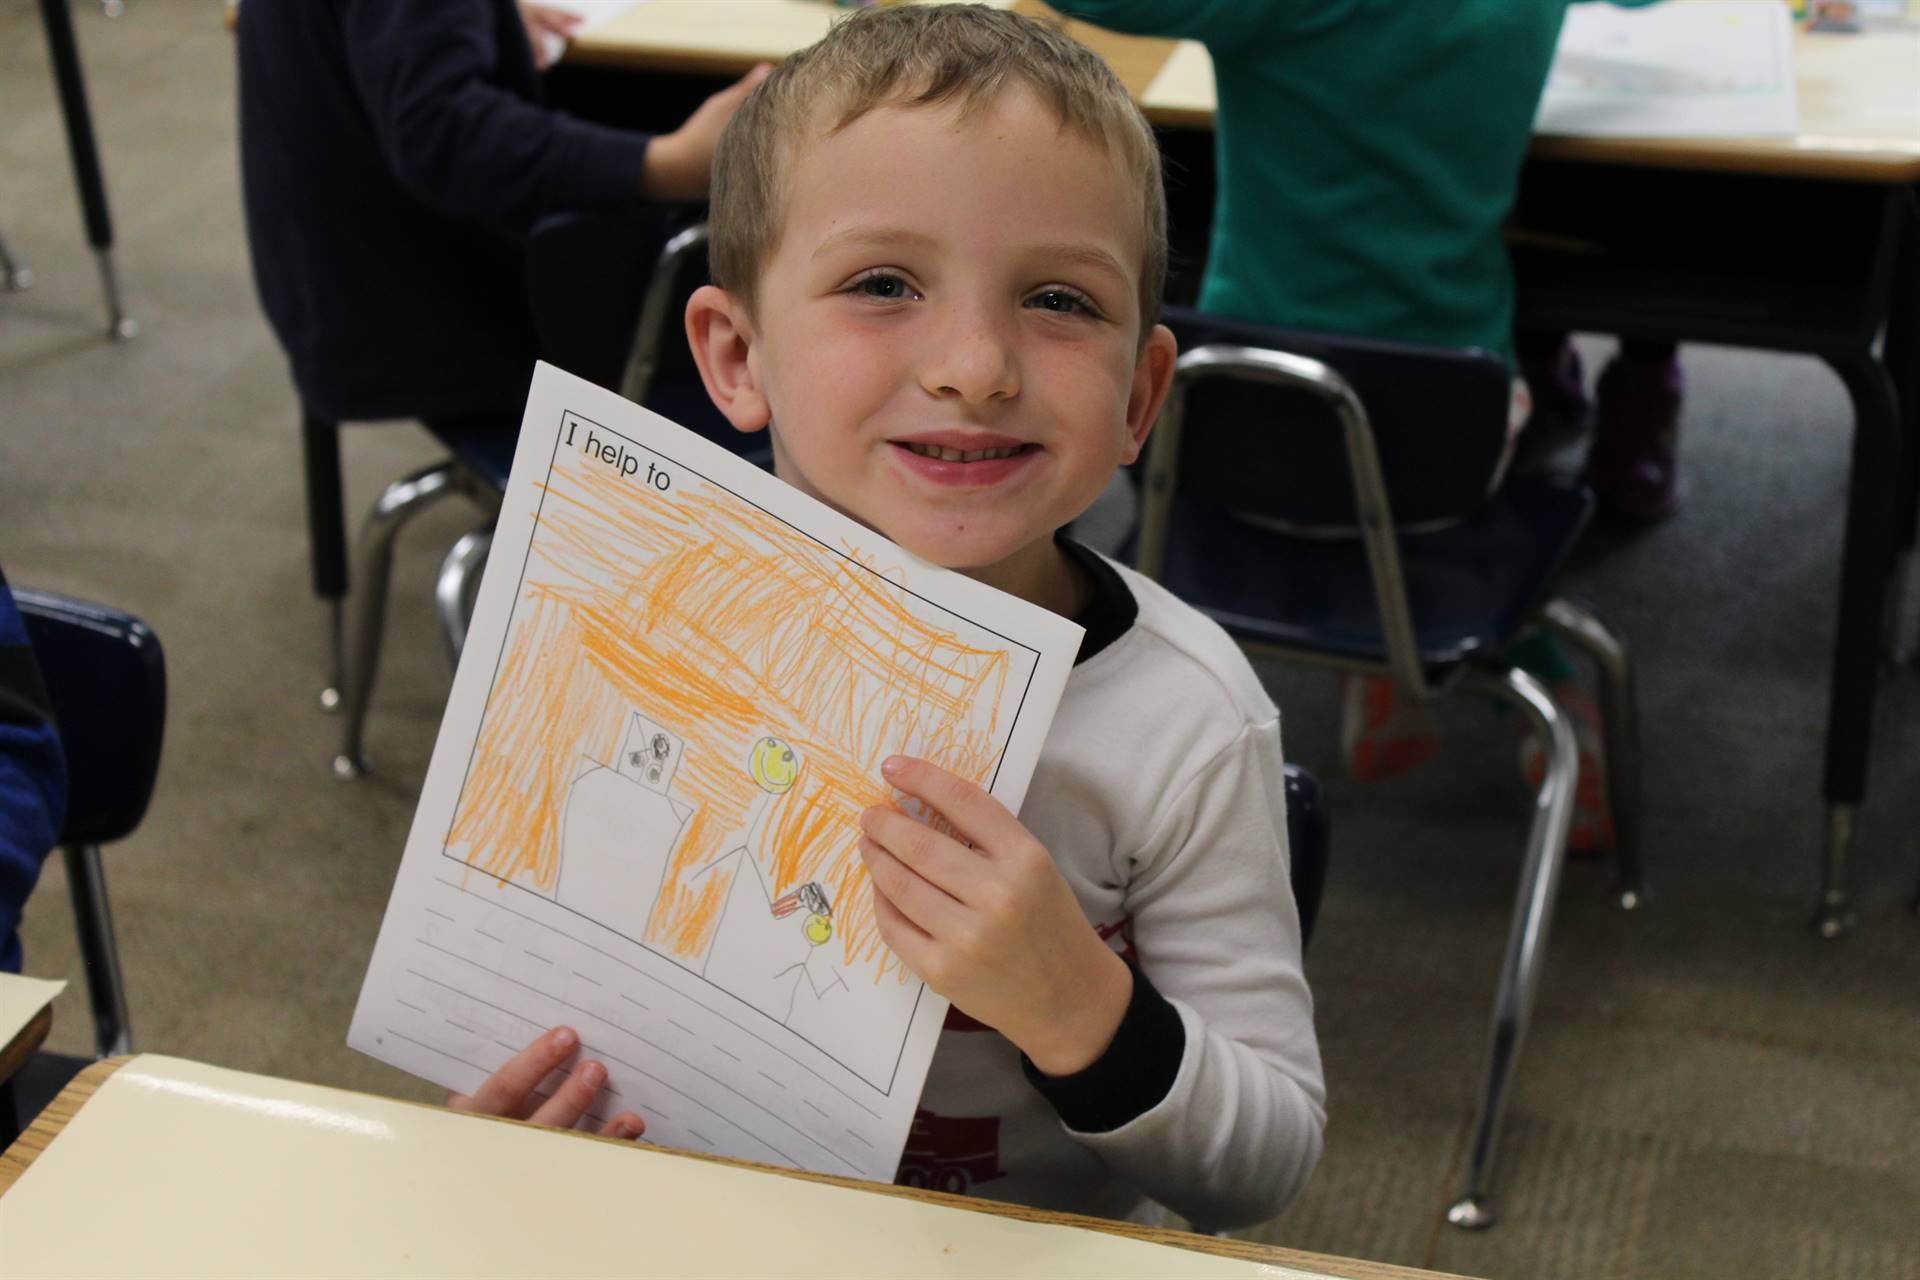 Kindergarten students draw pictures of how they help out at home